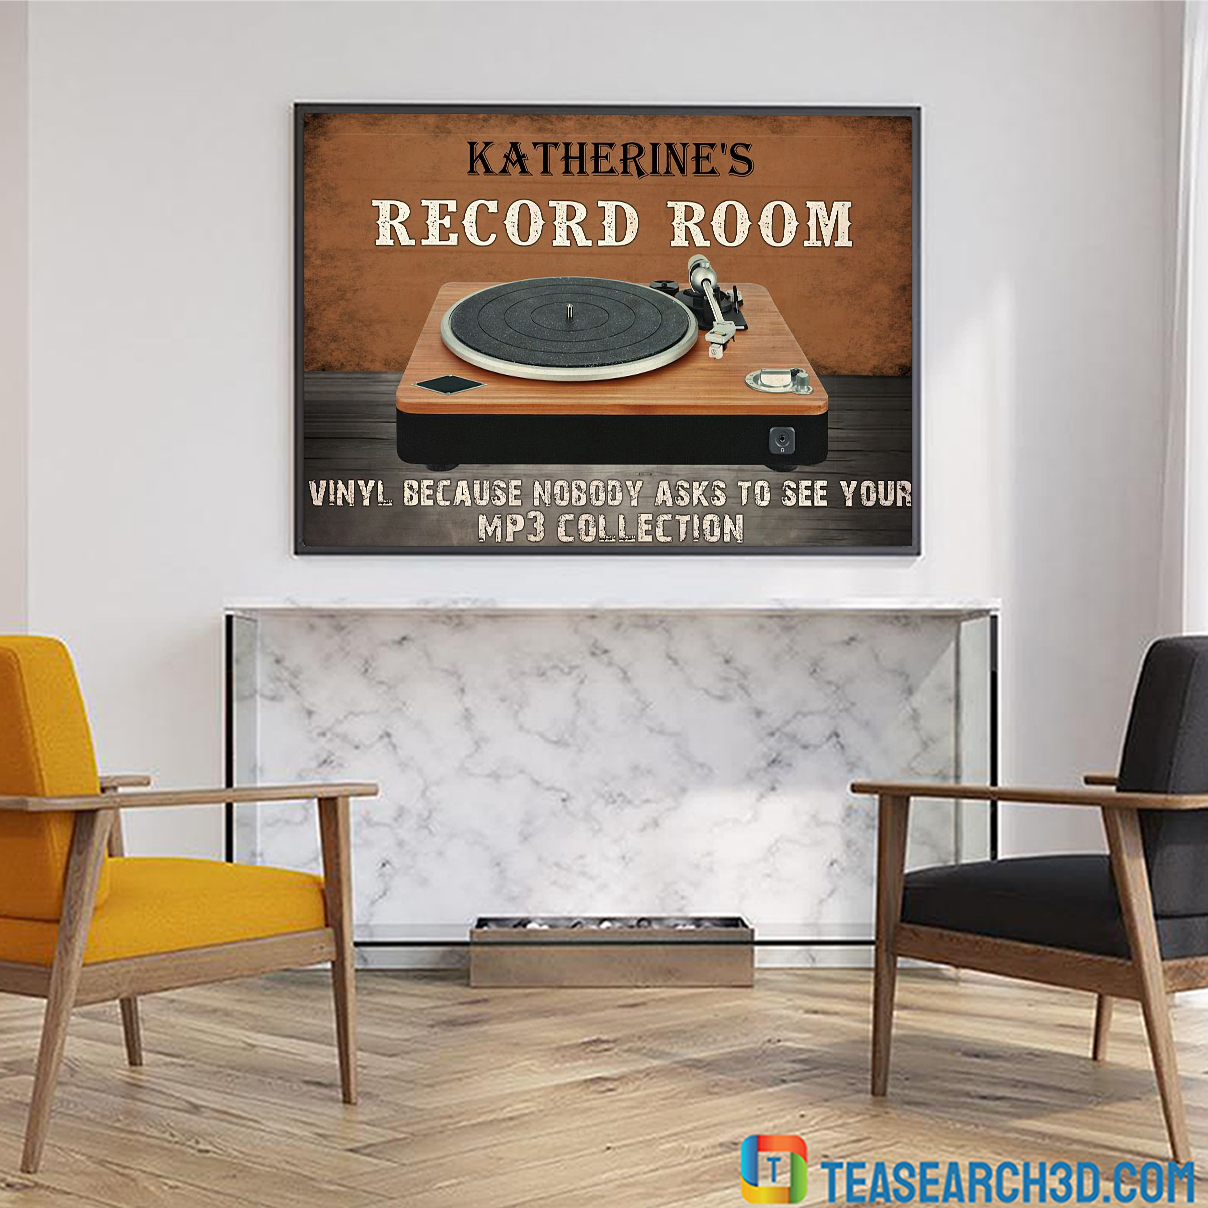 Personalized custom name record room vinyl because nobody asks to see poster A4